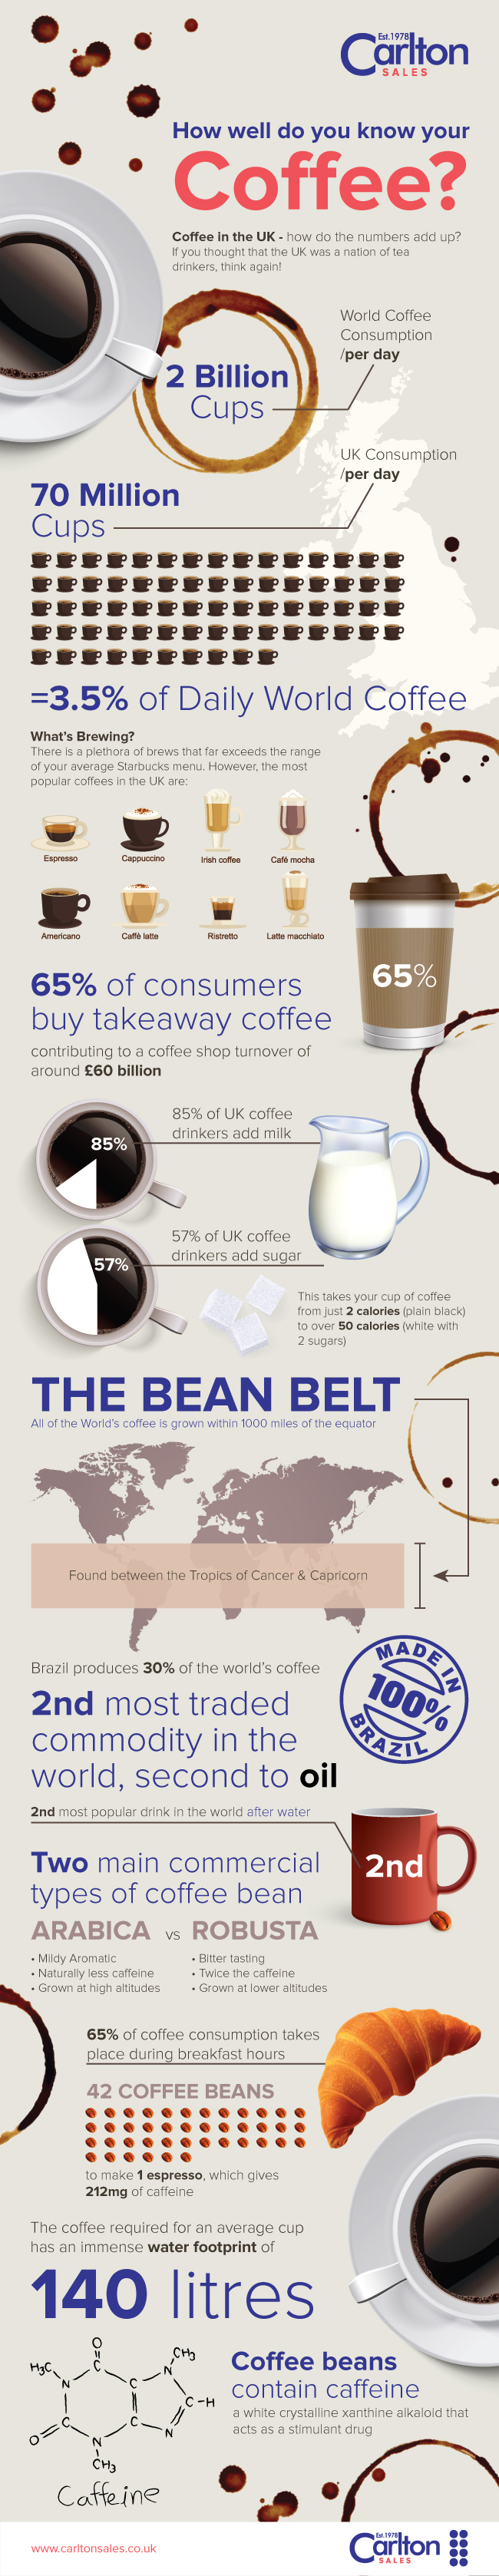 How Well Do You Know Coffee?